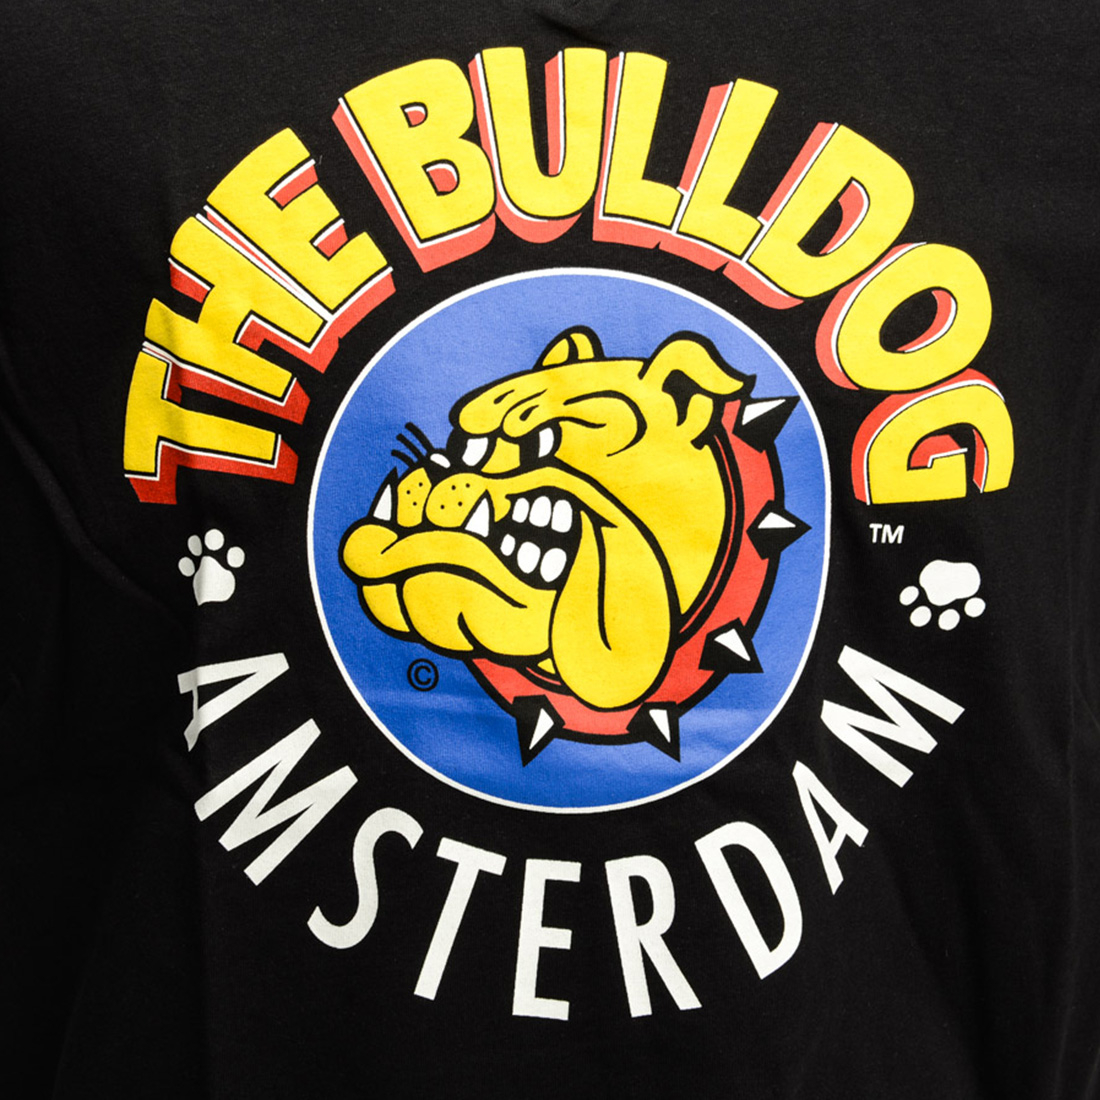 t shirt the bulldog